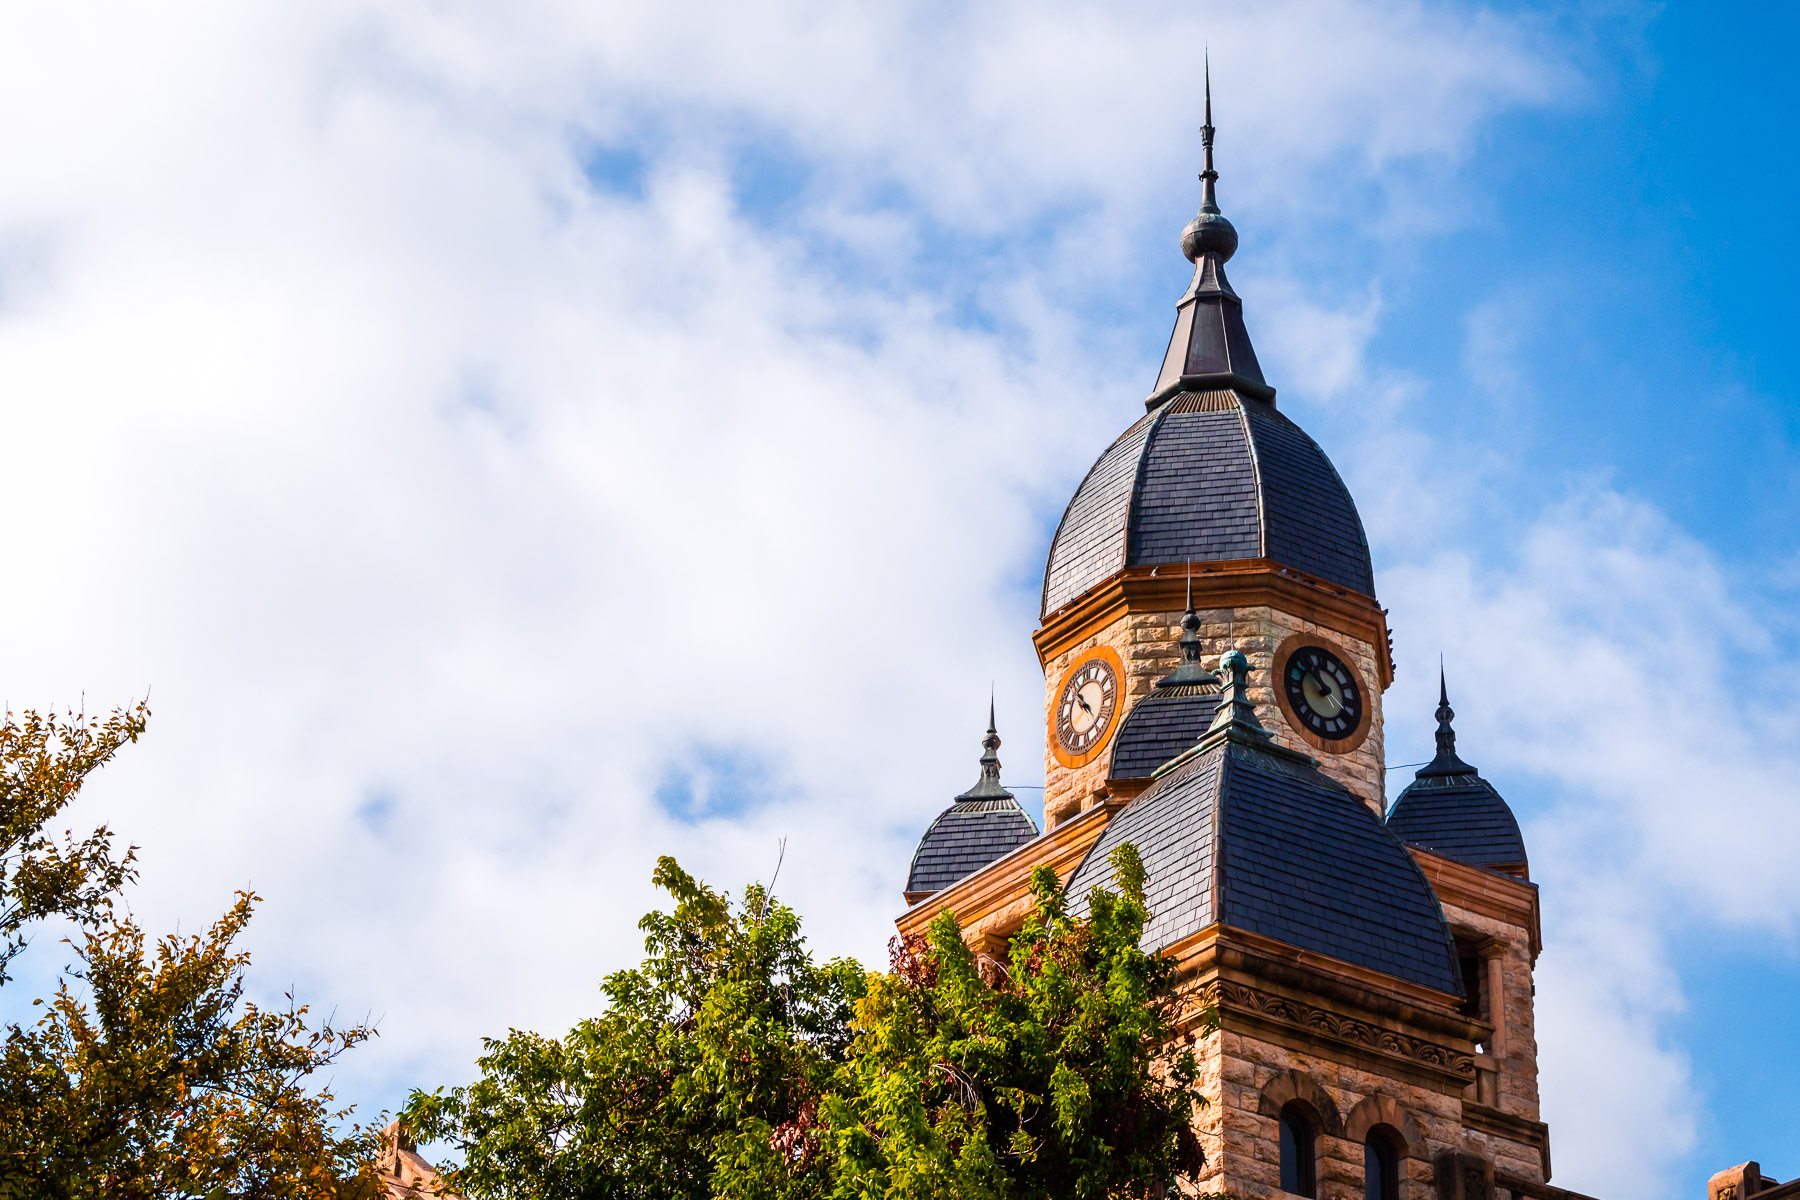 The clock tower at Denton County Courthouse rises into the sky over Denton, Texas.